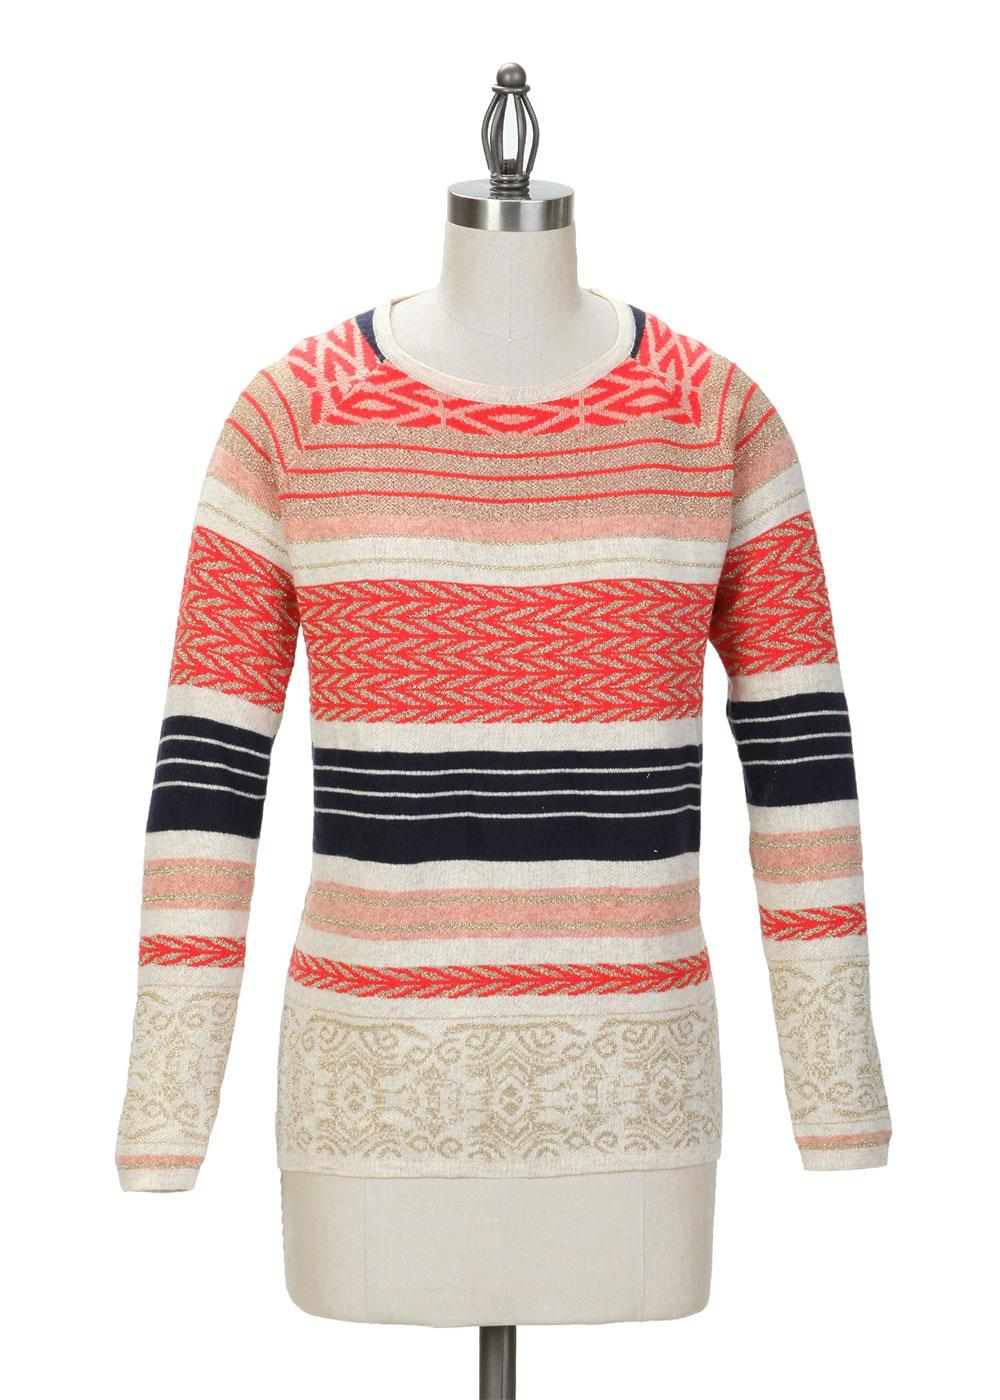 TULLE Retro 1980s Ornamental Fair Isle Jumper